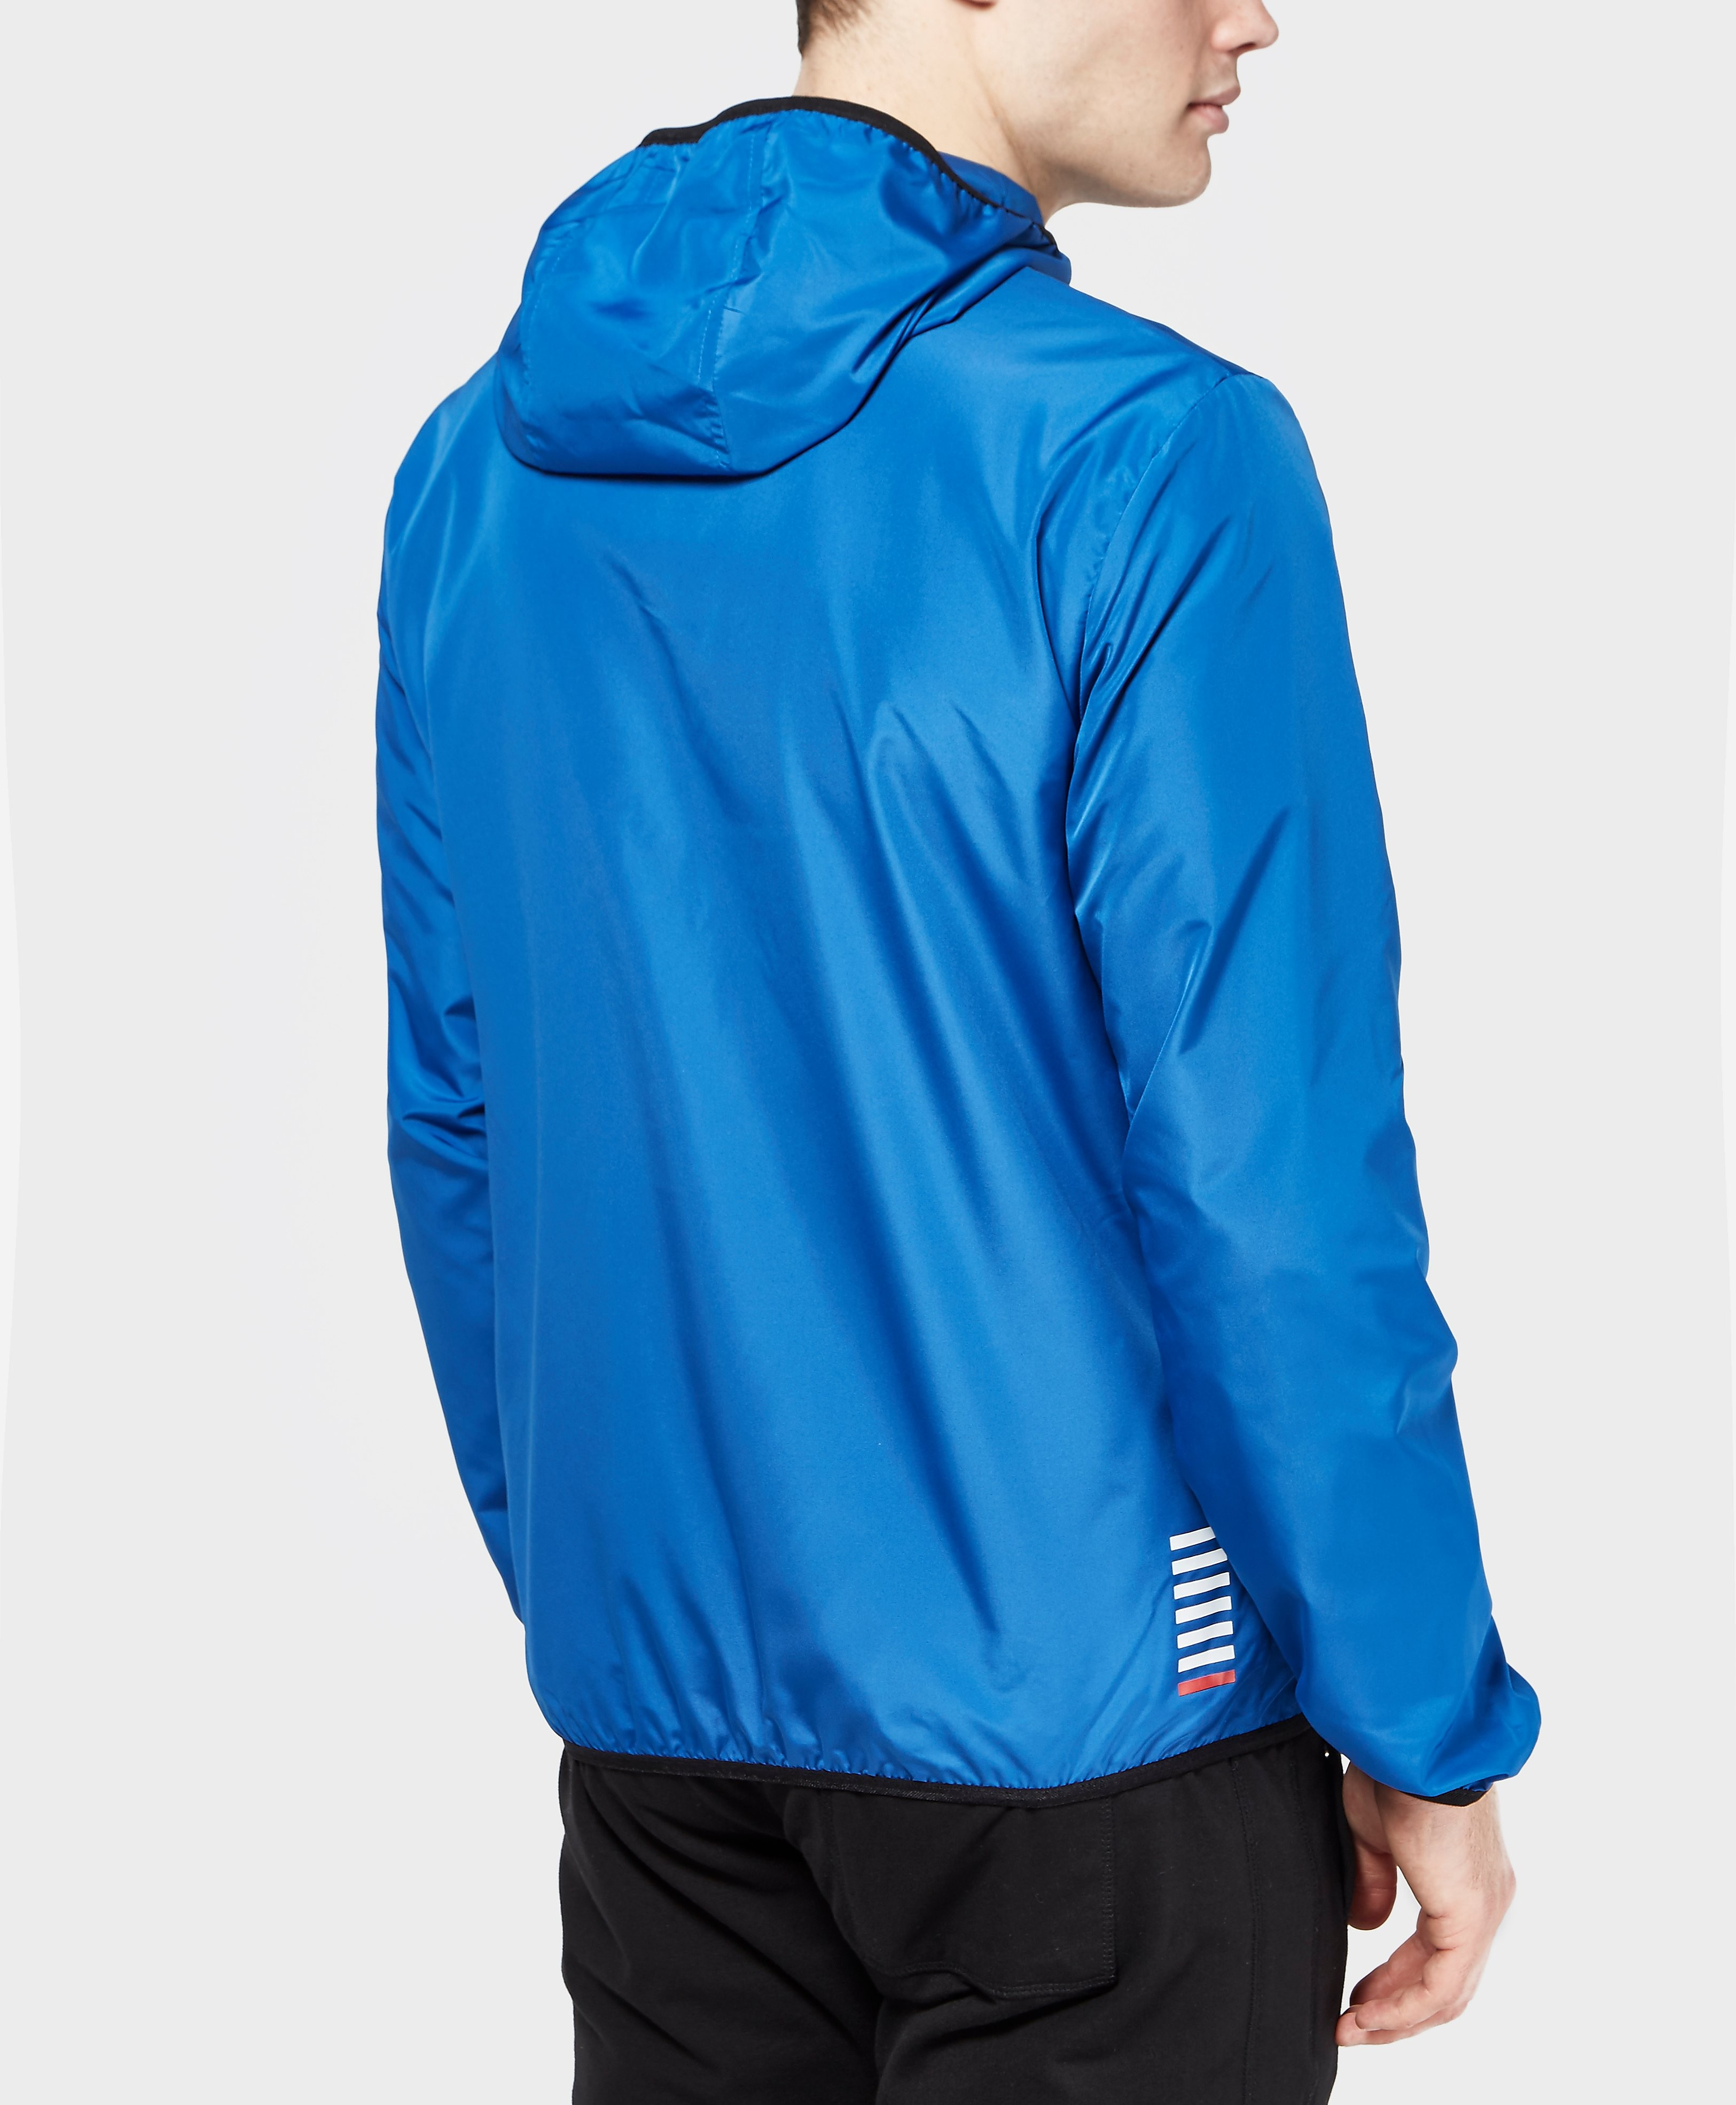 Emporio Armani EA7 Train Core Lightweight Jacket